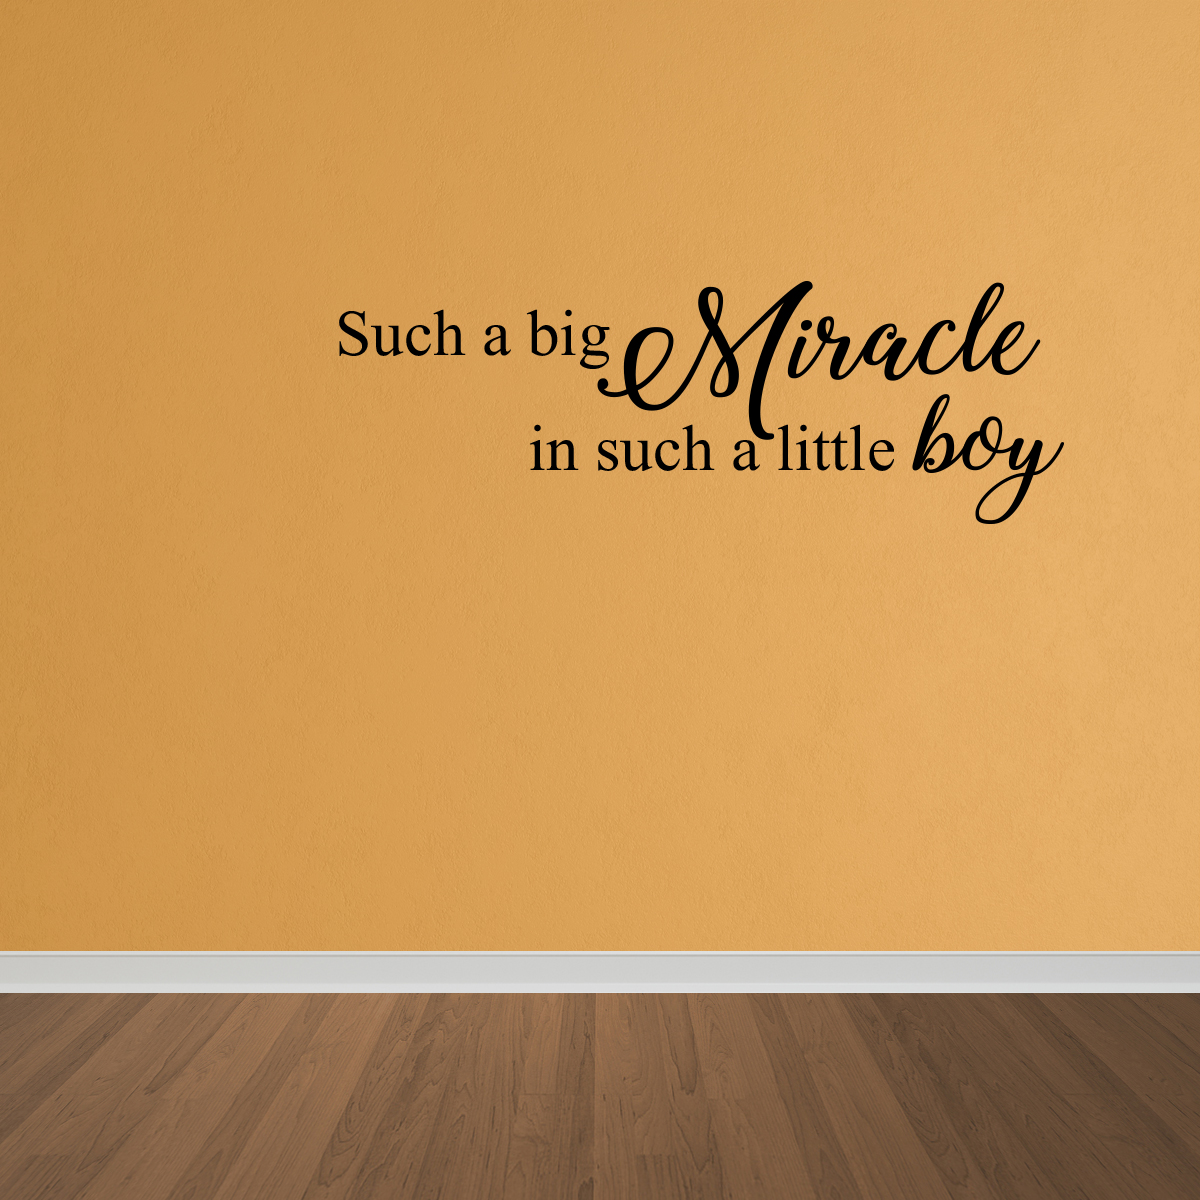 Wall Decal Quote Such Big Miracle In Such A Little Boy Decal Boy Quote Decal DP57